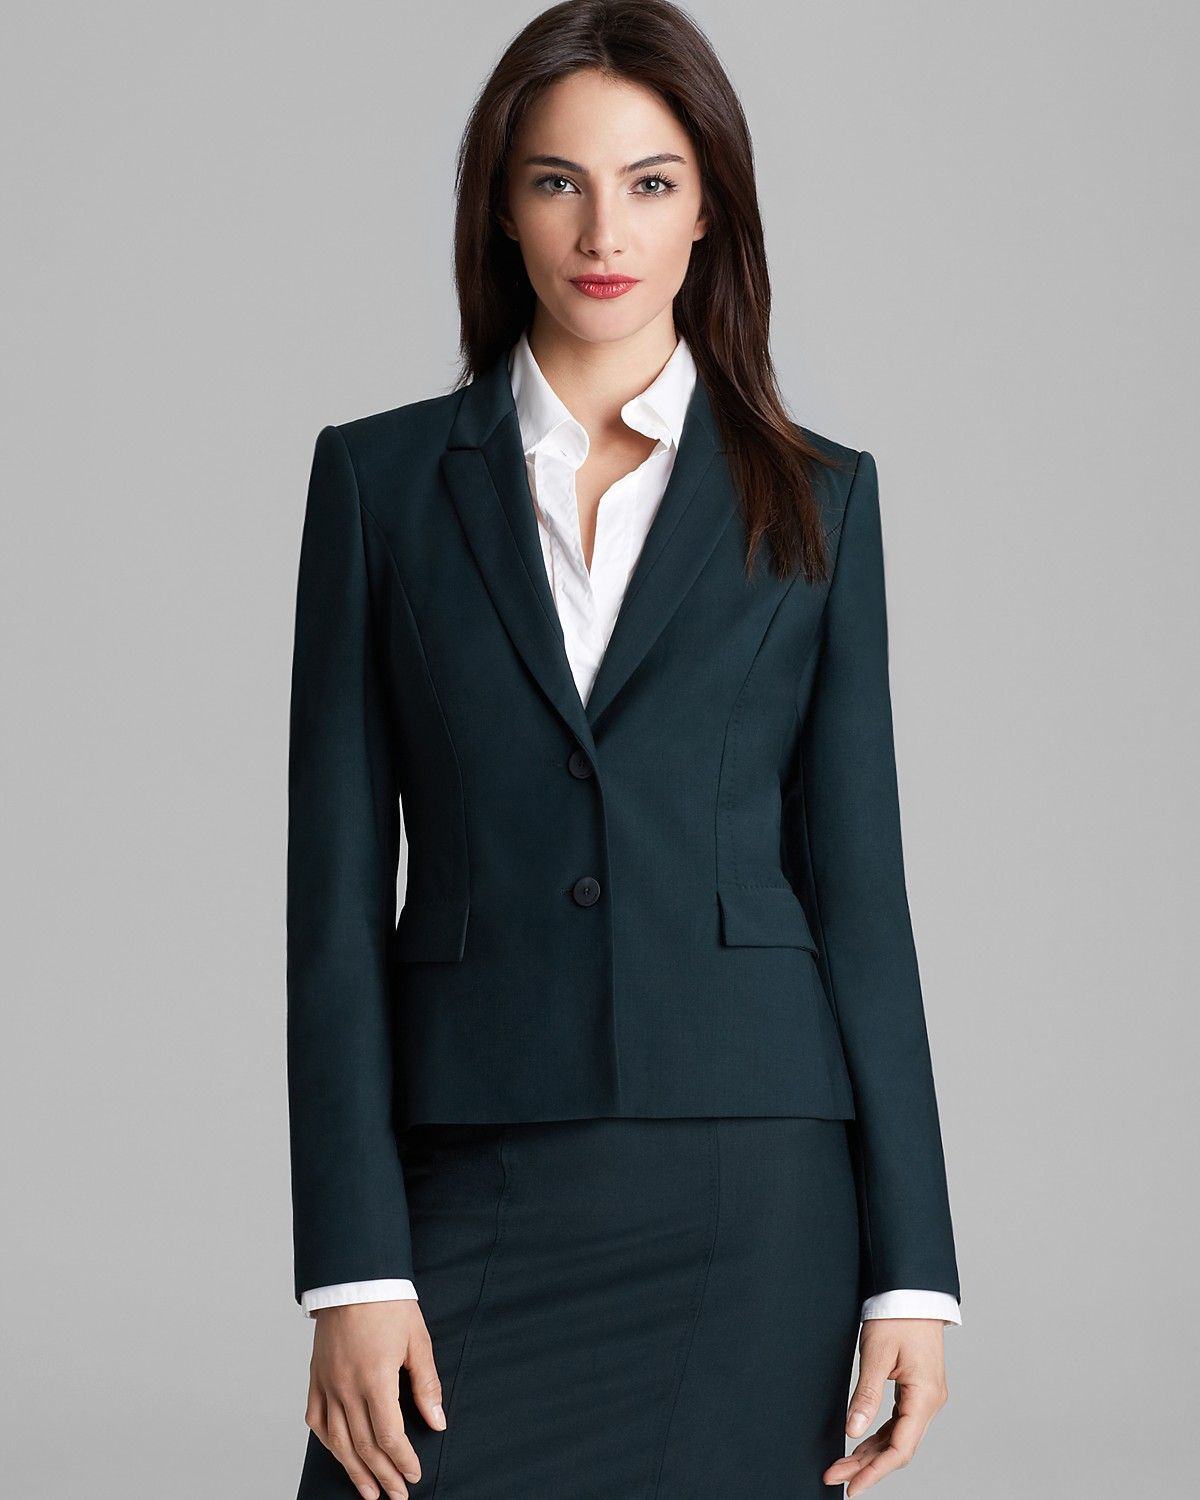 fc385e737 BOSS Hugo Boss Jilina Blazer | Bloomingdale's Business Outfits Women,  Business Women, Blazer Shirt